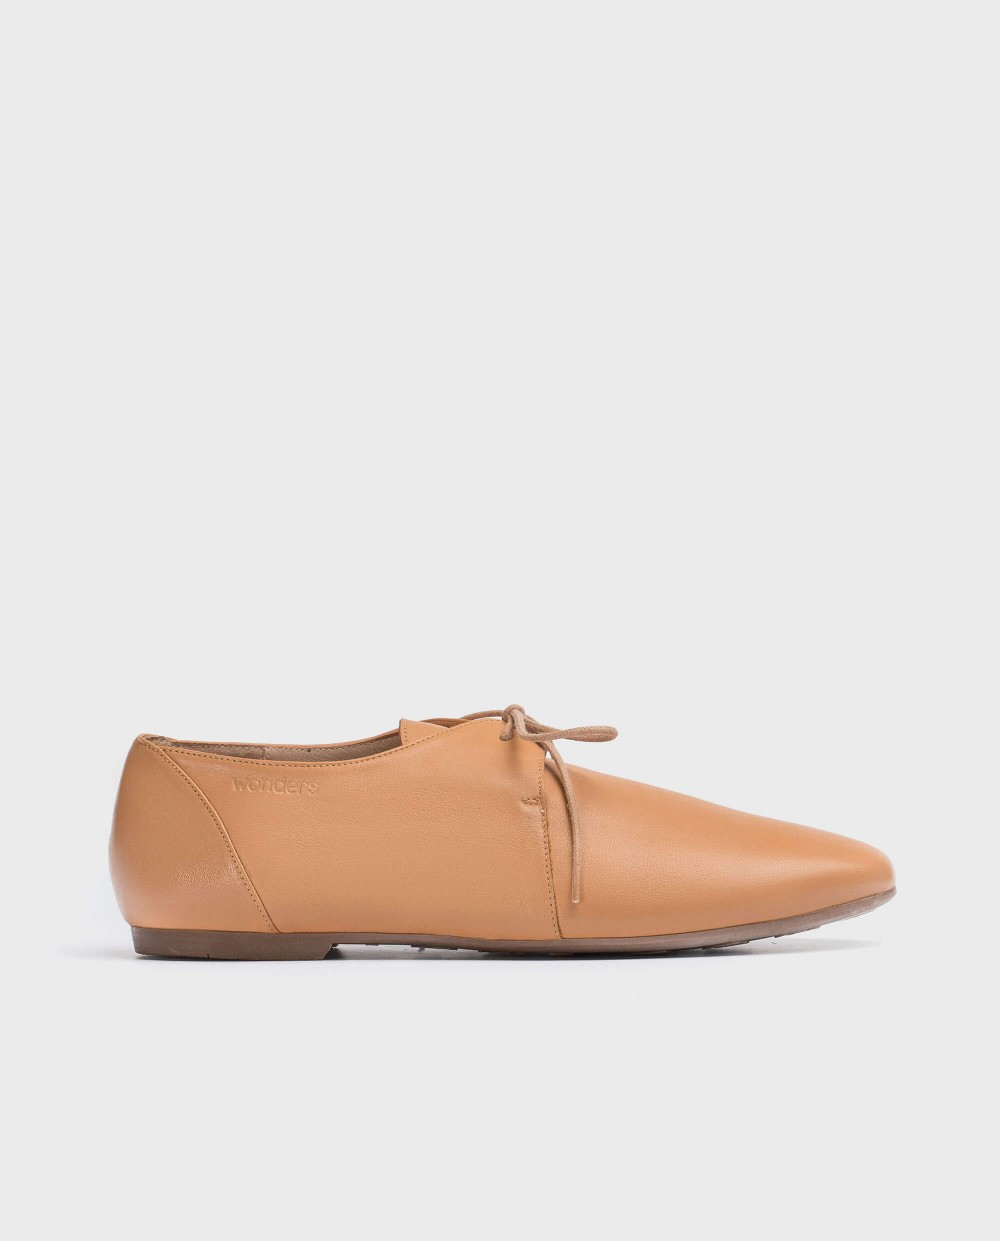 Wonders-Flat Shoes-Leather shoe with lace